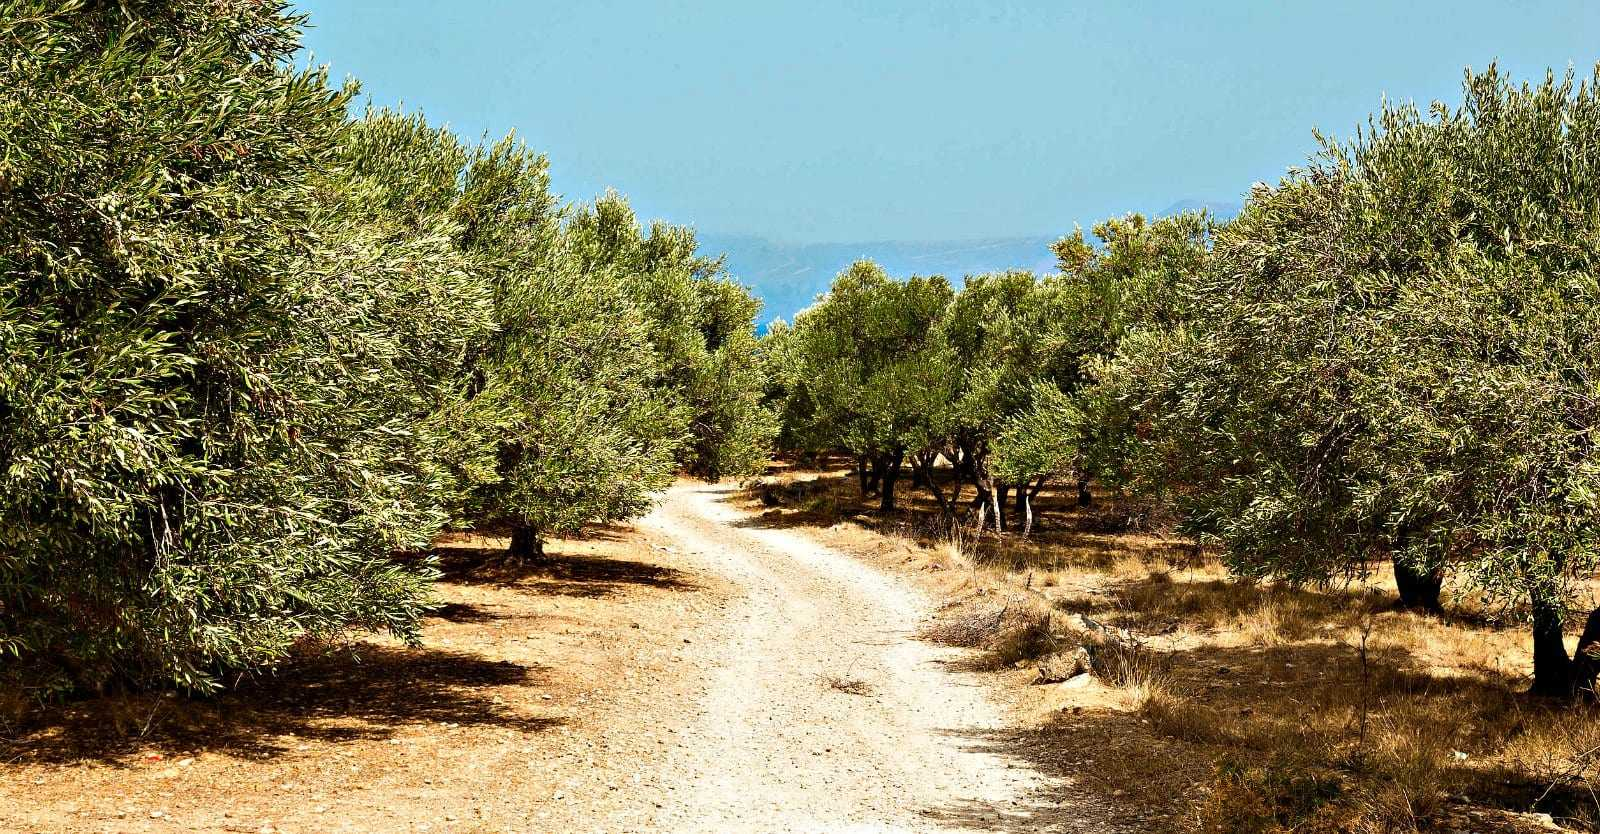 route-to-sustainable-tourism-in-greece-lined-with-olive-oil